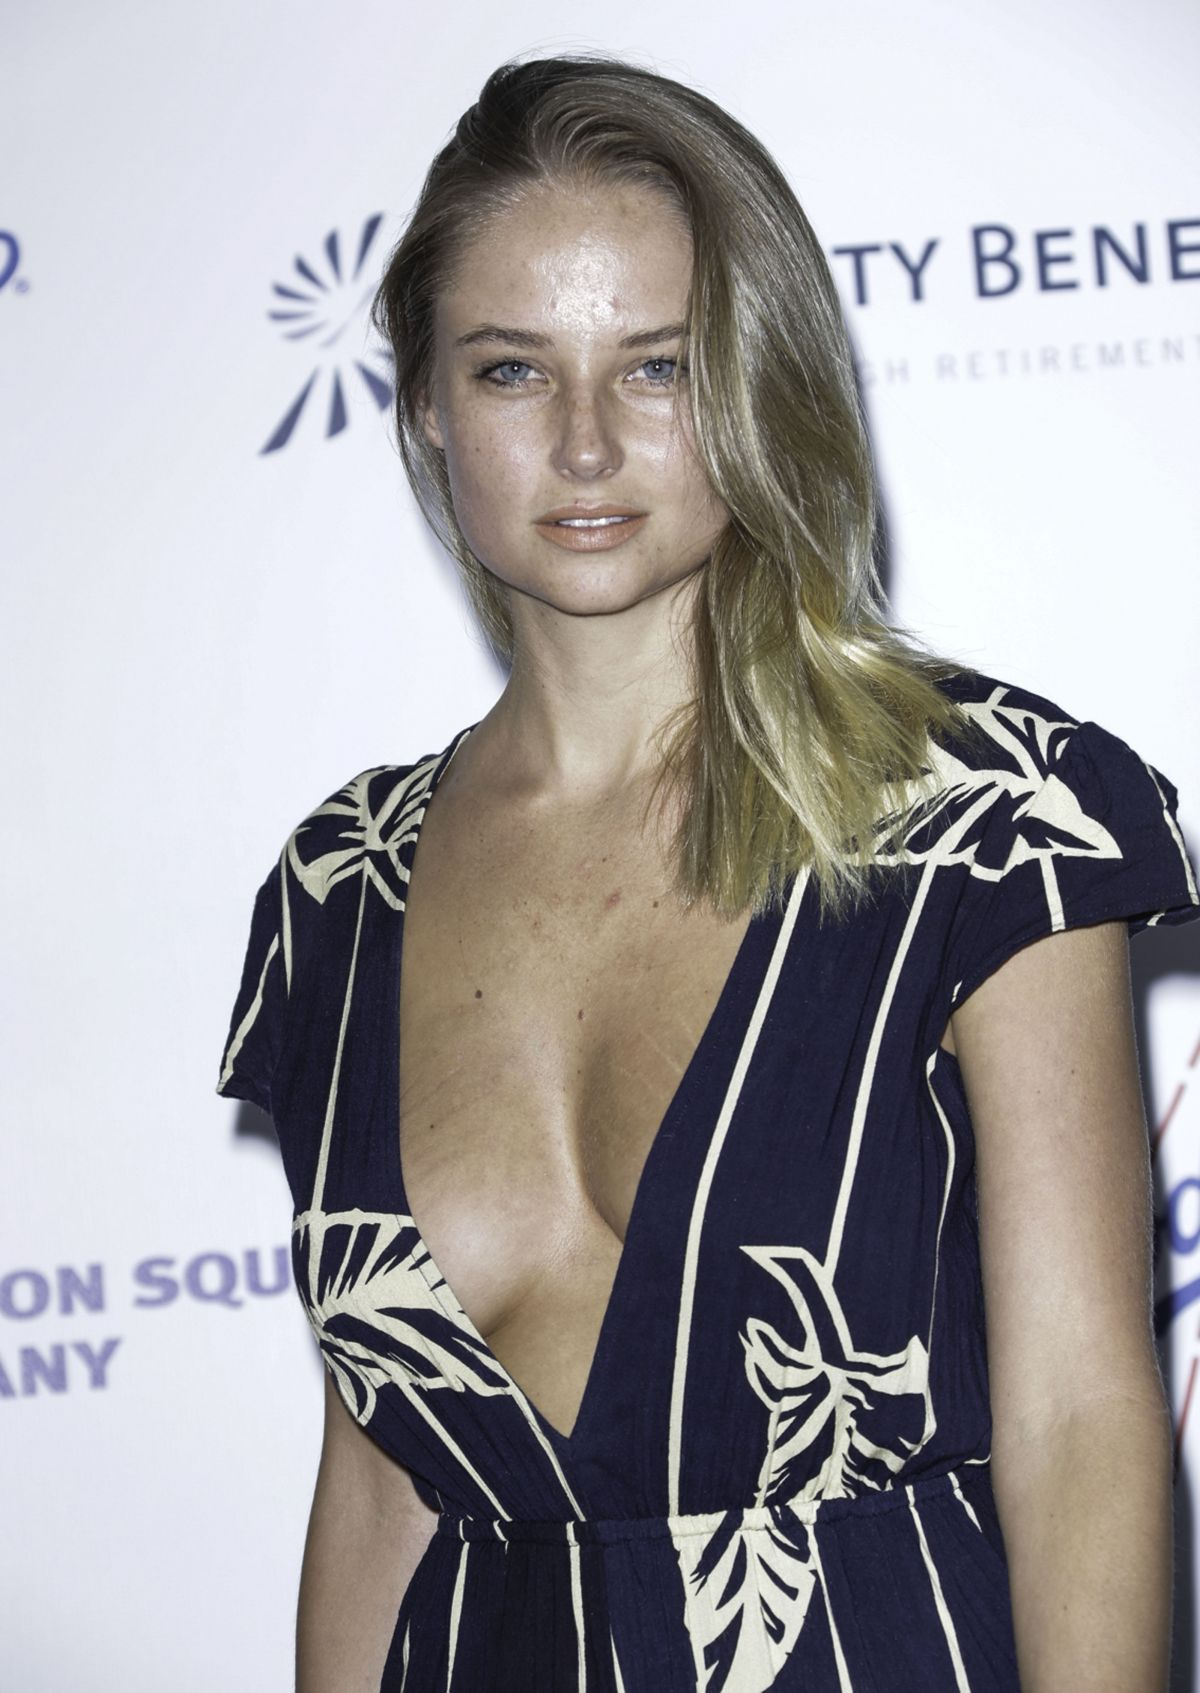 GENEVIEVE MORTON at LA Dodgers Foundation Blue Diamond Gala in Los Angeles 07/28/2016